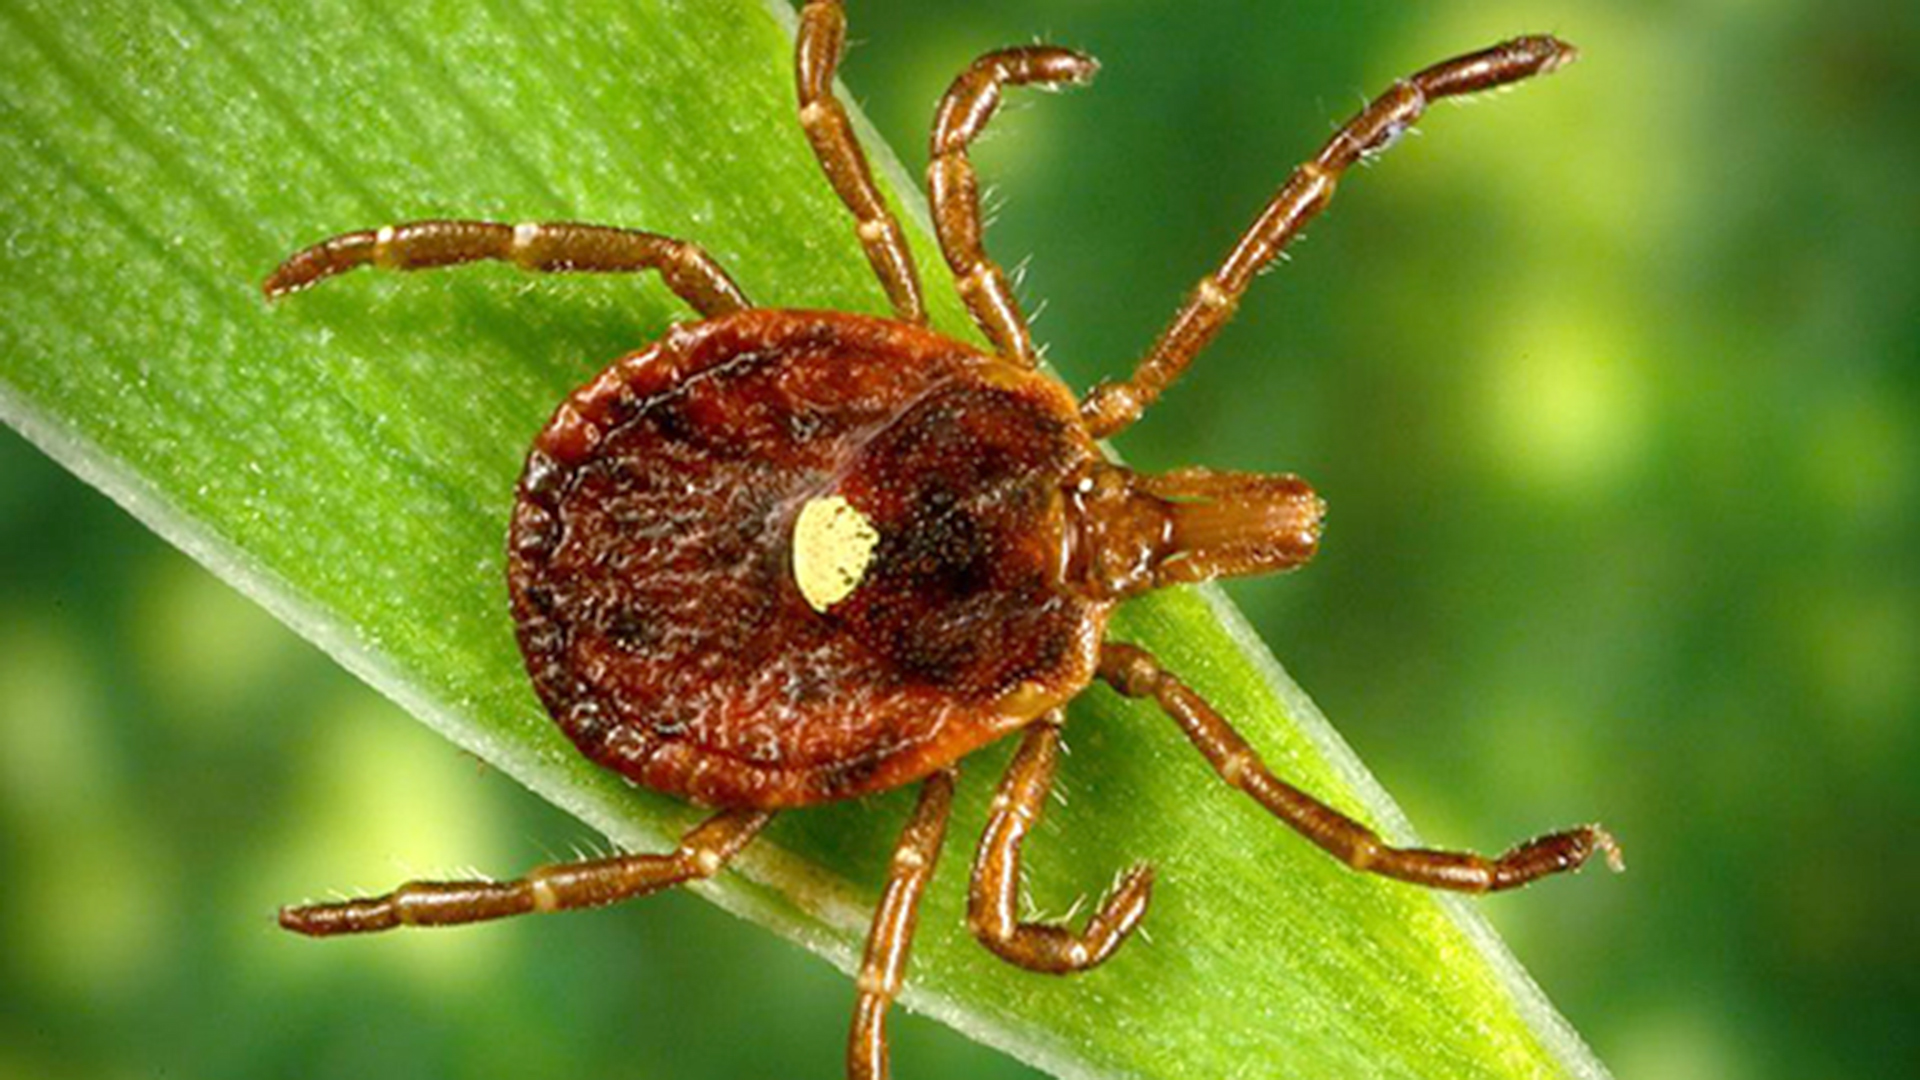 pictures of ticks - HD 1920×1080